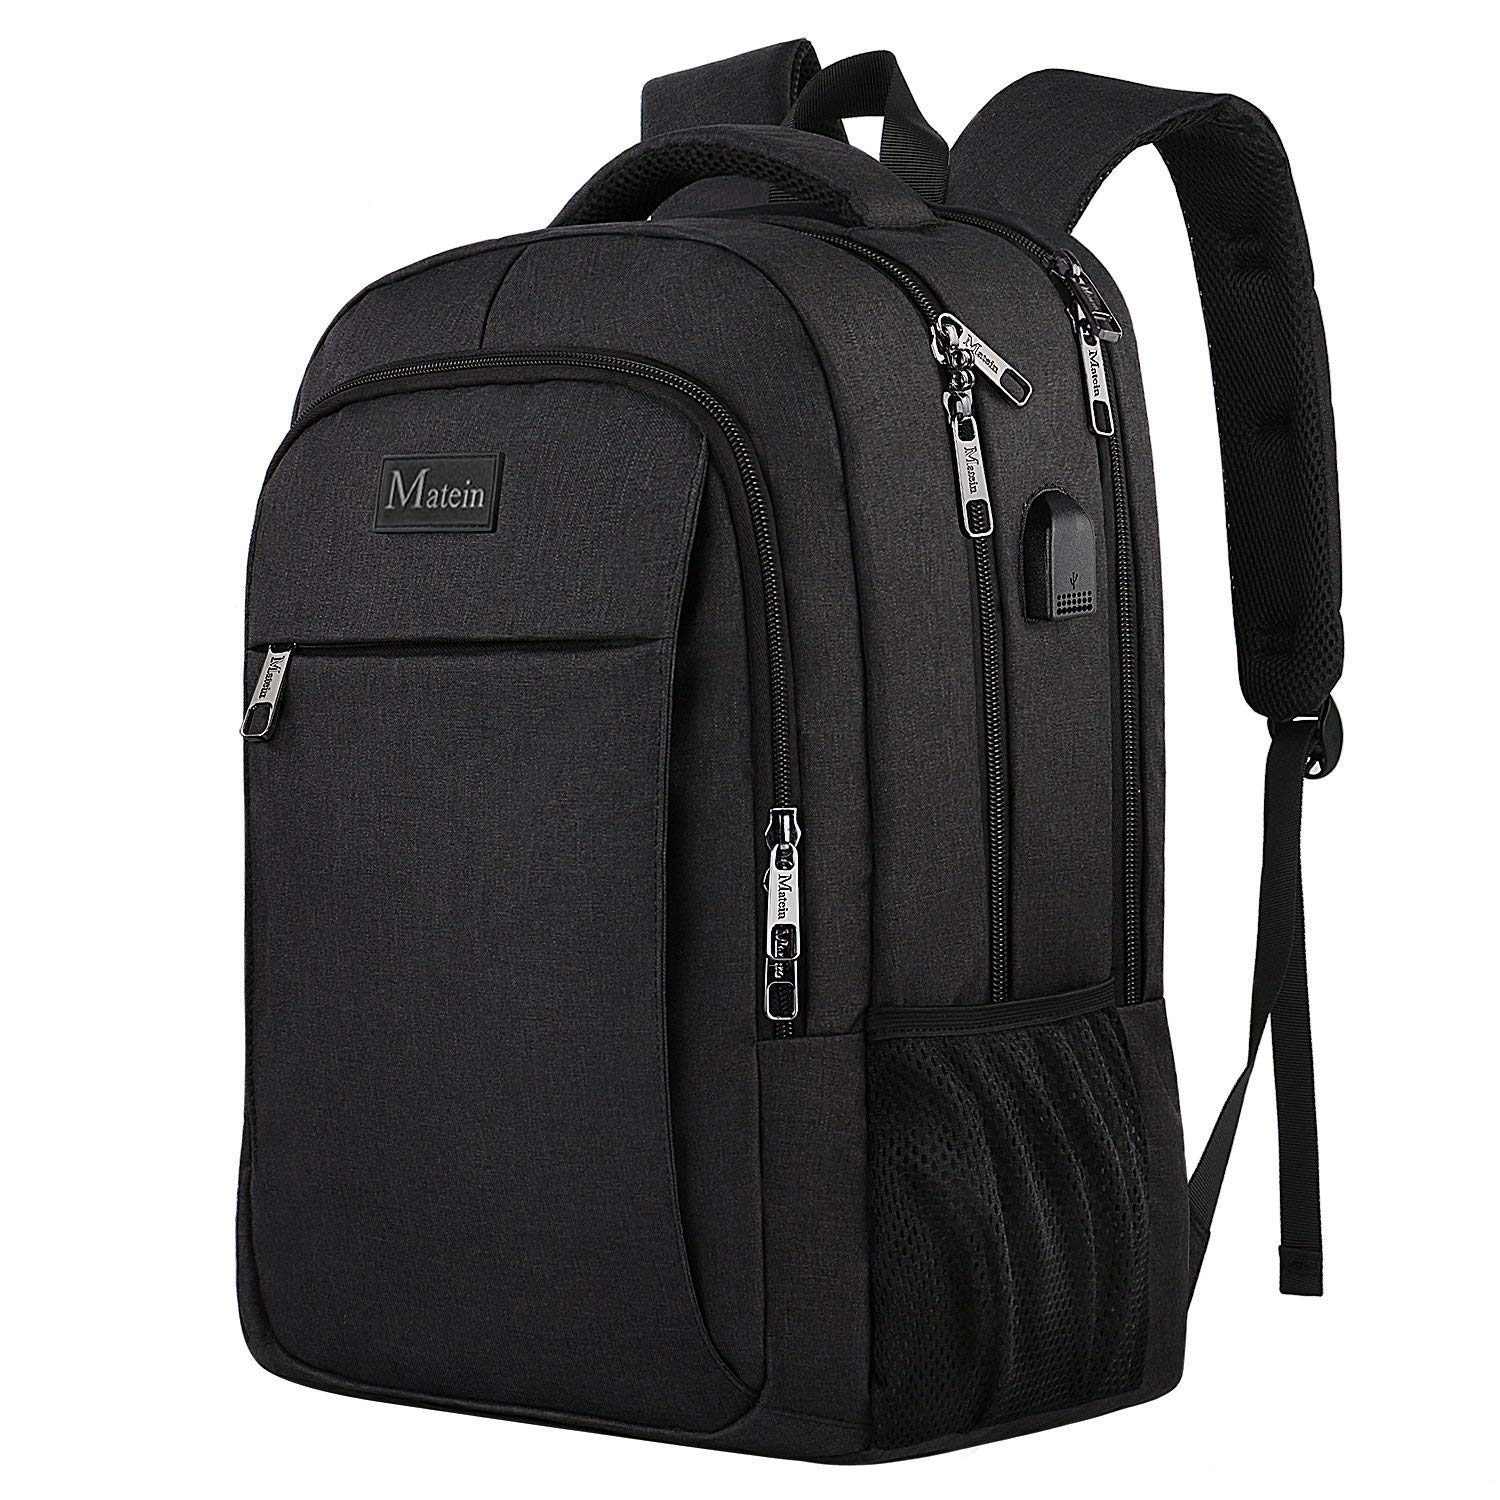 f58d2d58c38a MATEIN Business Laptop Backpack, Slim Travel Computer Rucksack with USB  Charging Port, Professional Water Resistant College School Daypack For  Women ...